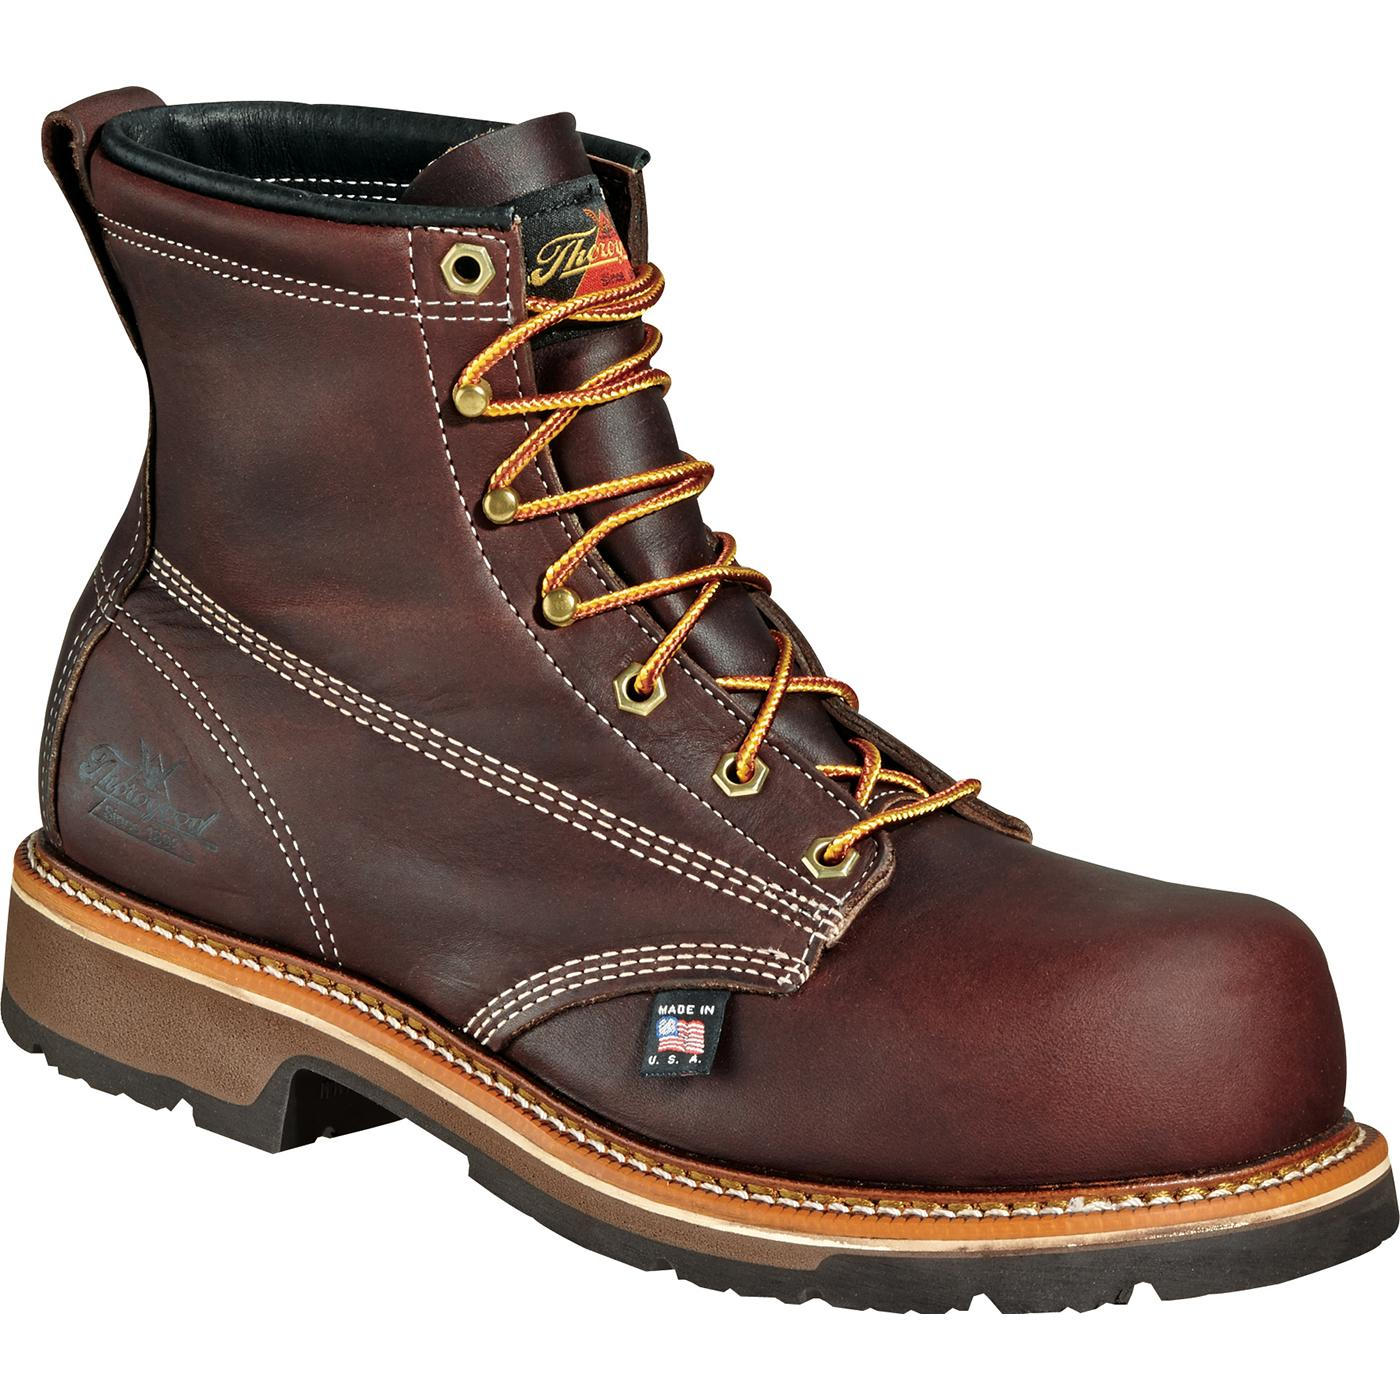 a15c02a214d Thorogood Emperor Composite Toe Work Boot